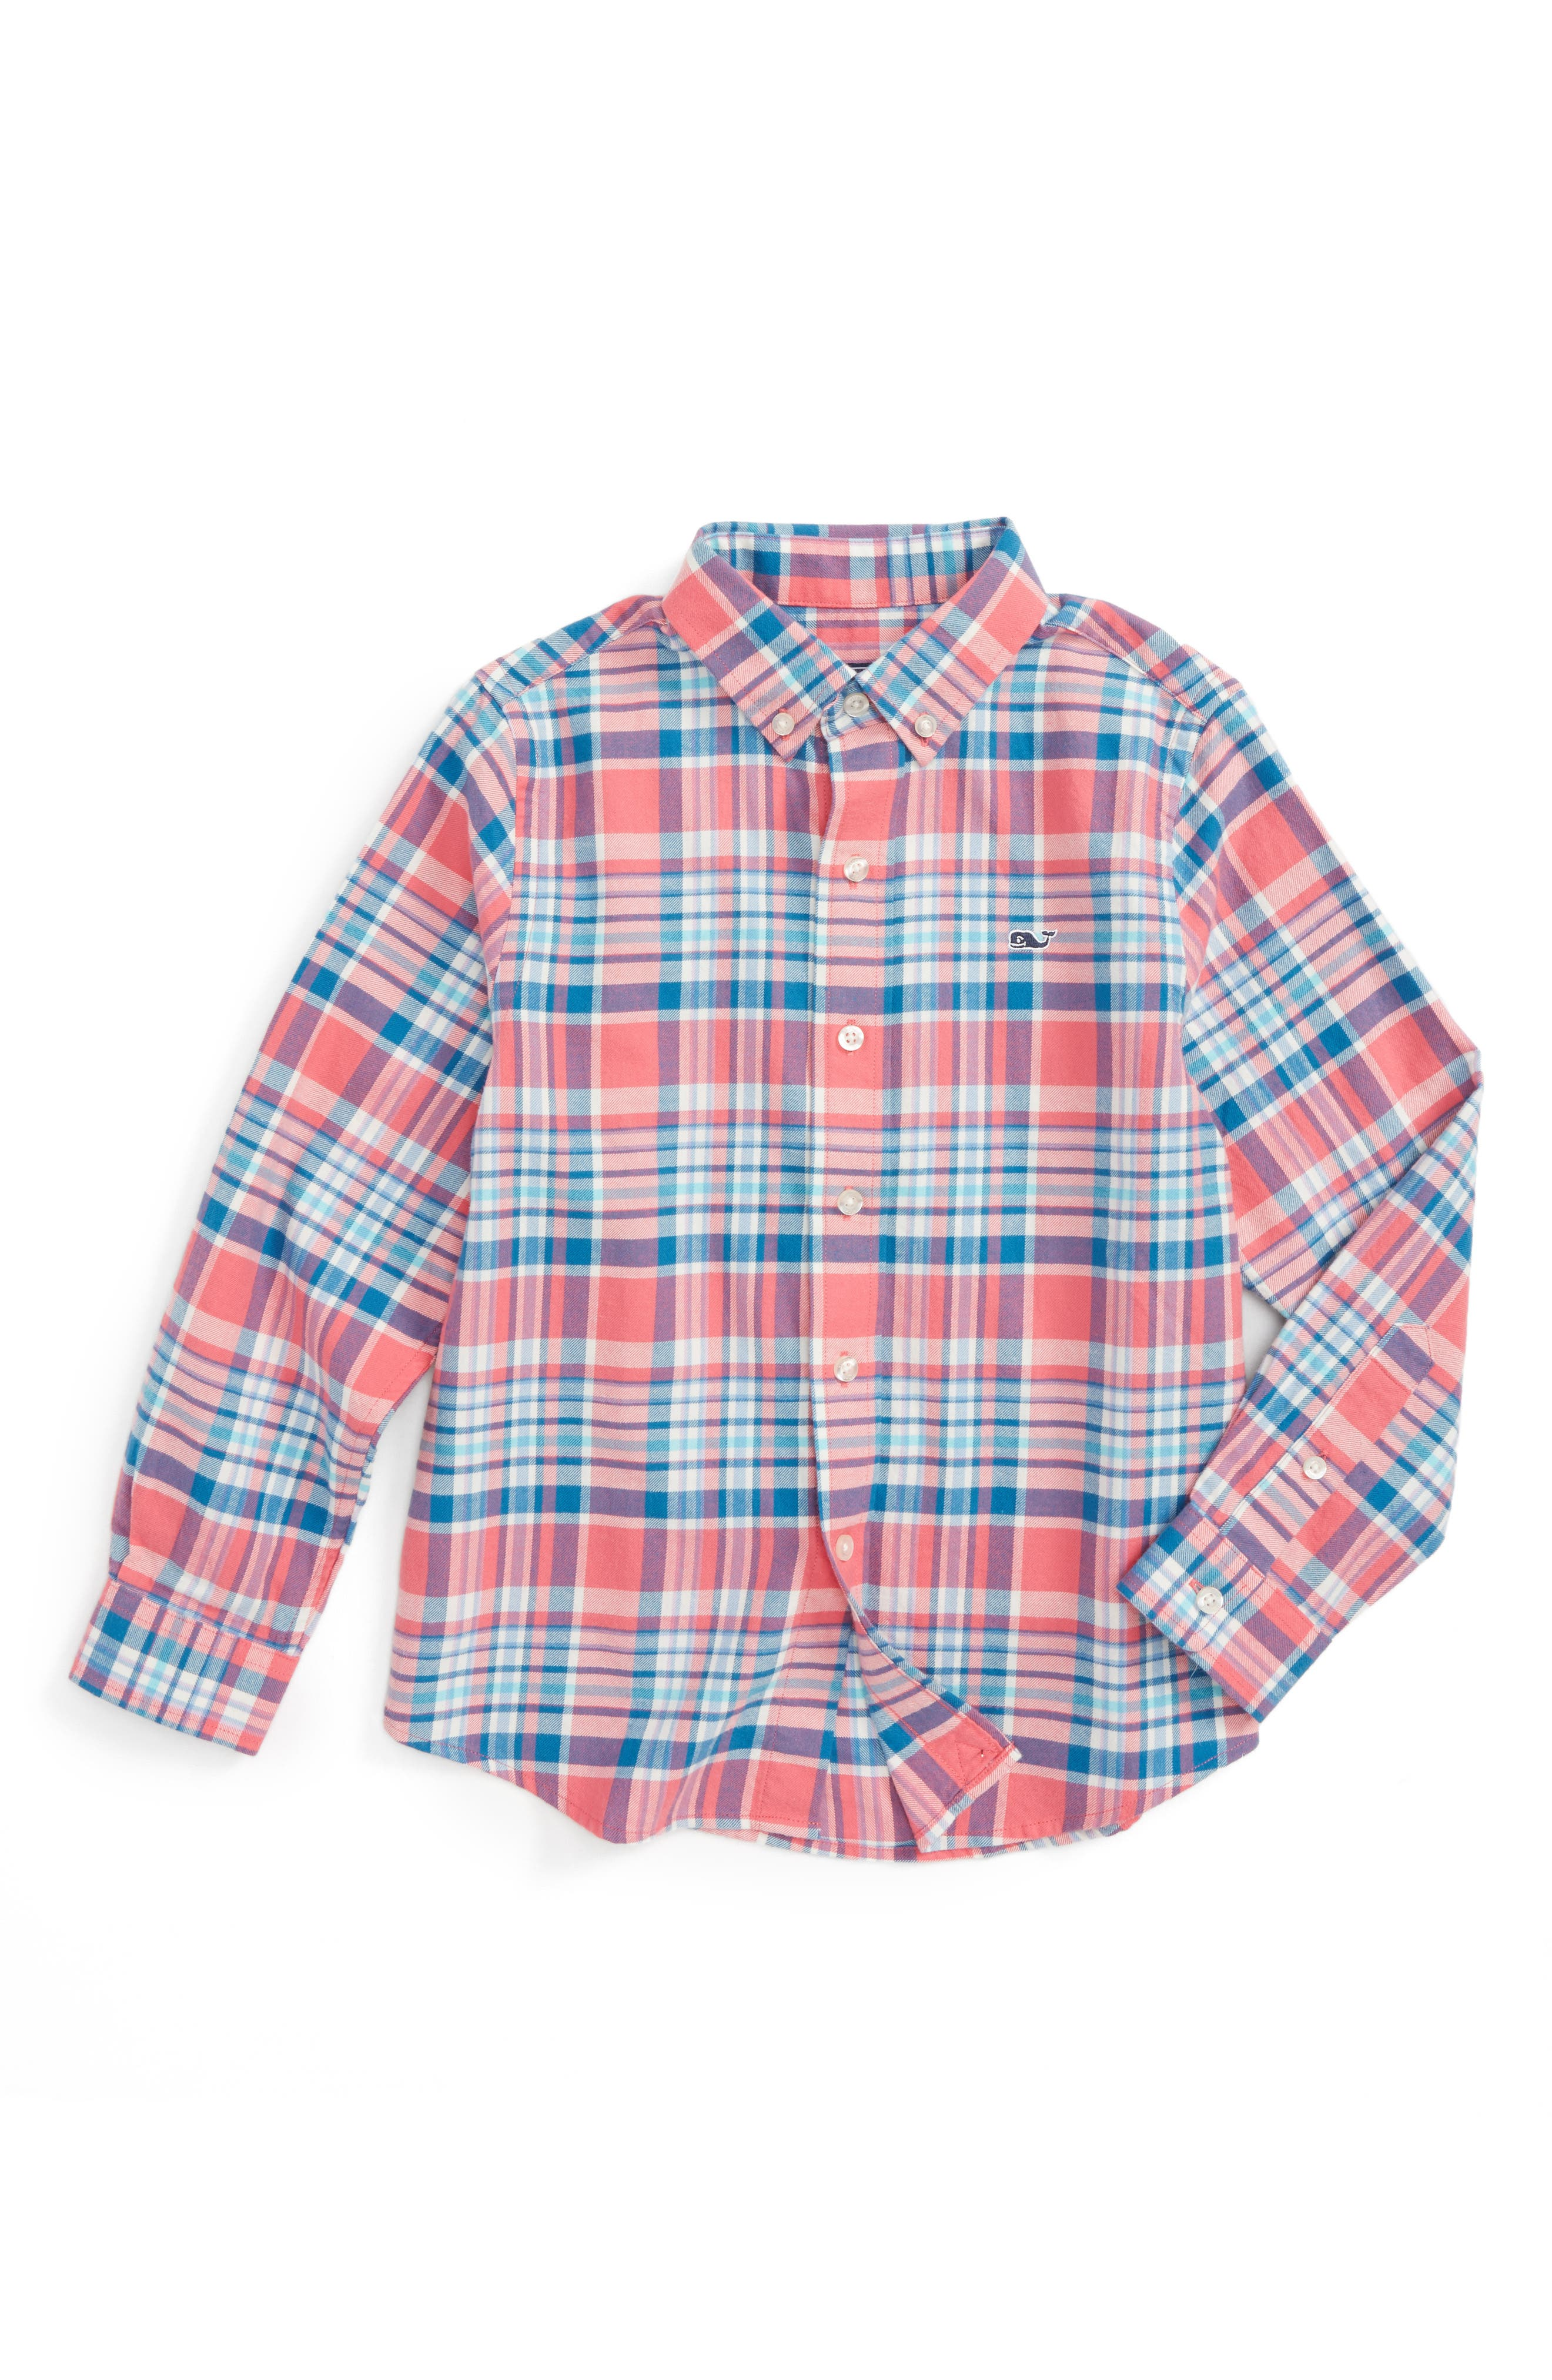 Middleton Plaid Flannel Shirt,                             Main thumbnail 1, color,                             Rose Pink